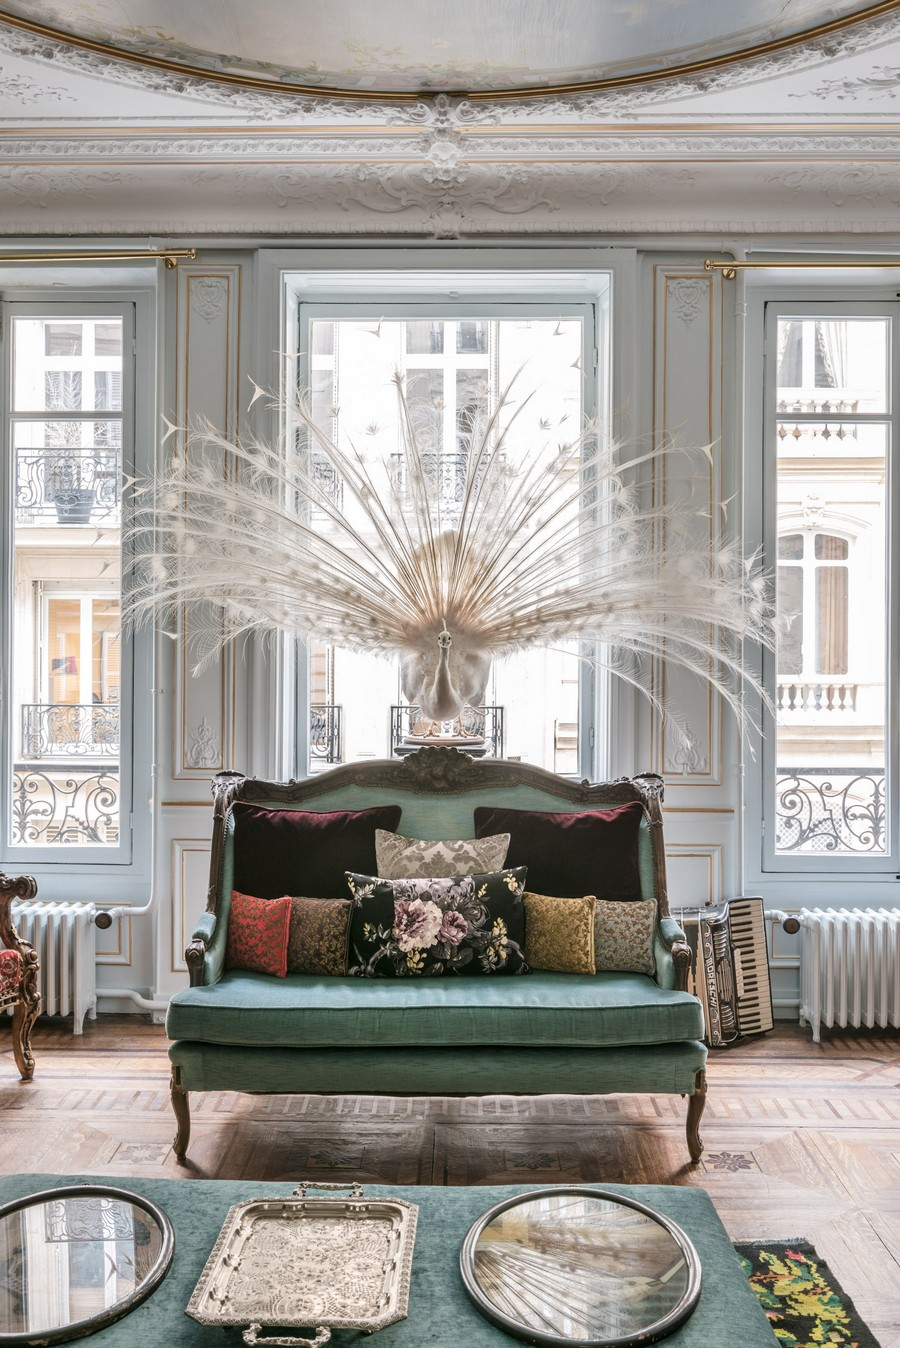 The Most Marvelous Pied-à-Terre Projects to Experience in Paris 5 Pied-à-Terre Projects The Most Marvelous Pied-à-Terre Projects to Experience in Paris The Most Marvelous Pied    Terre Projects to Experience in Paris 5